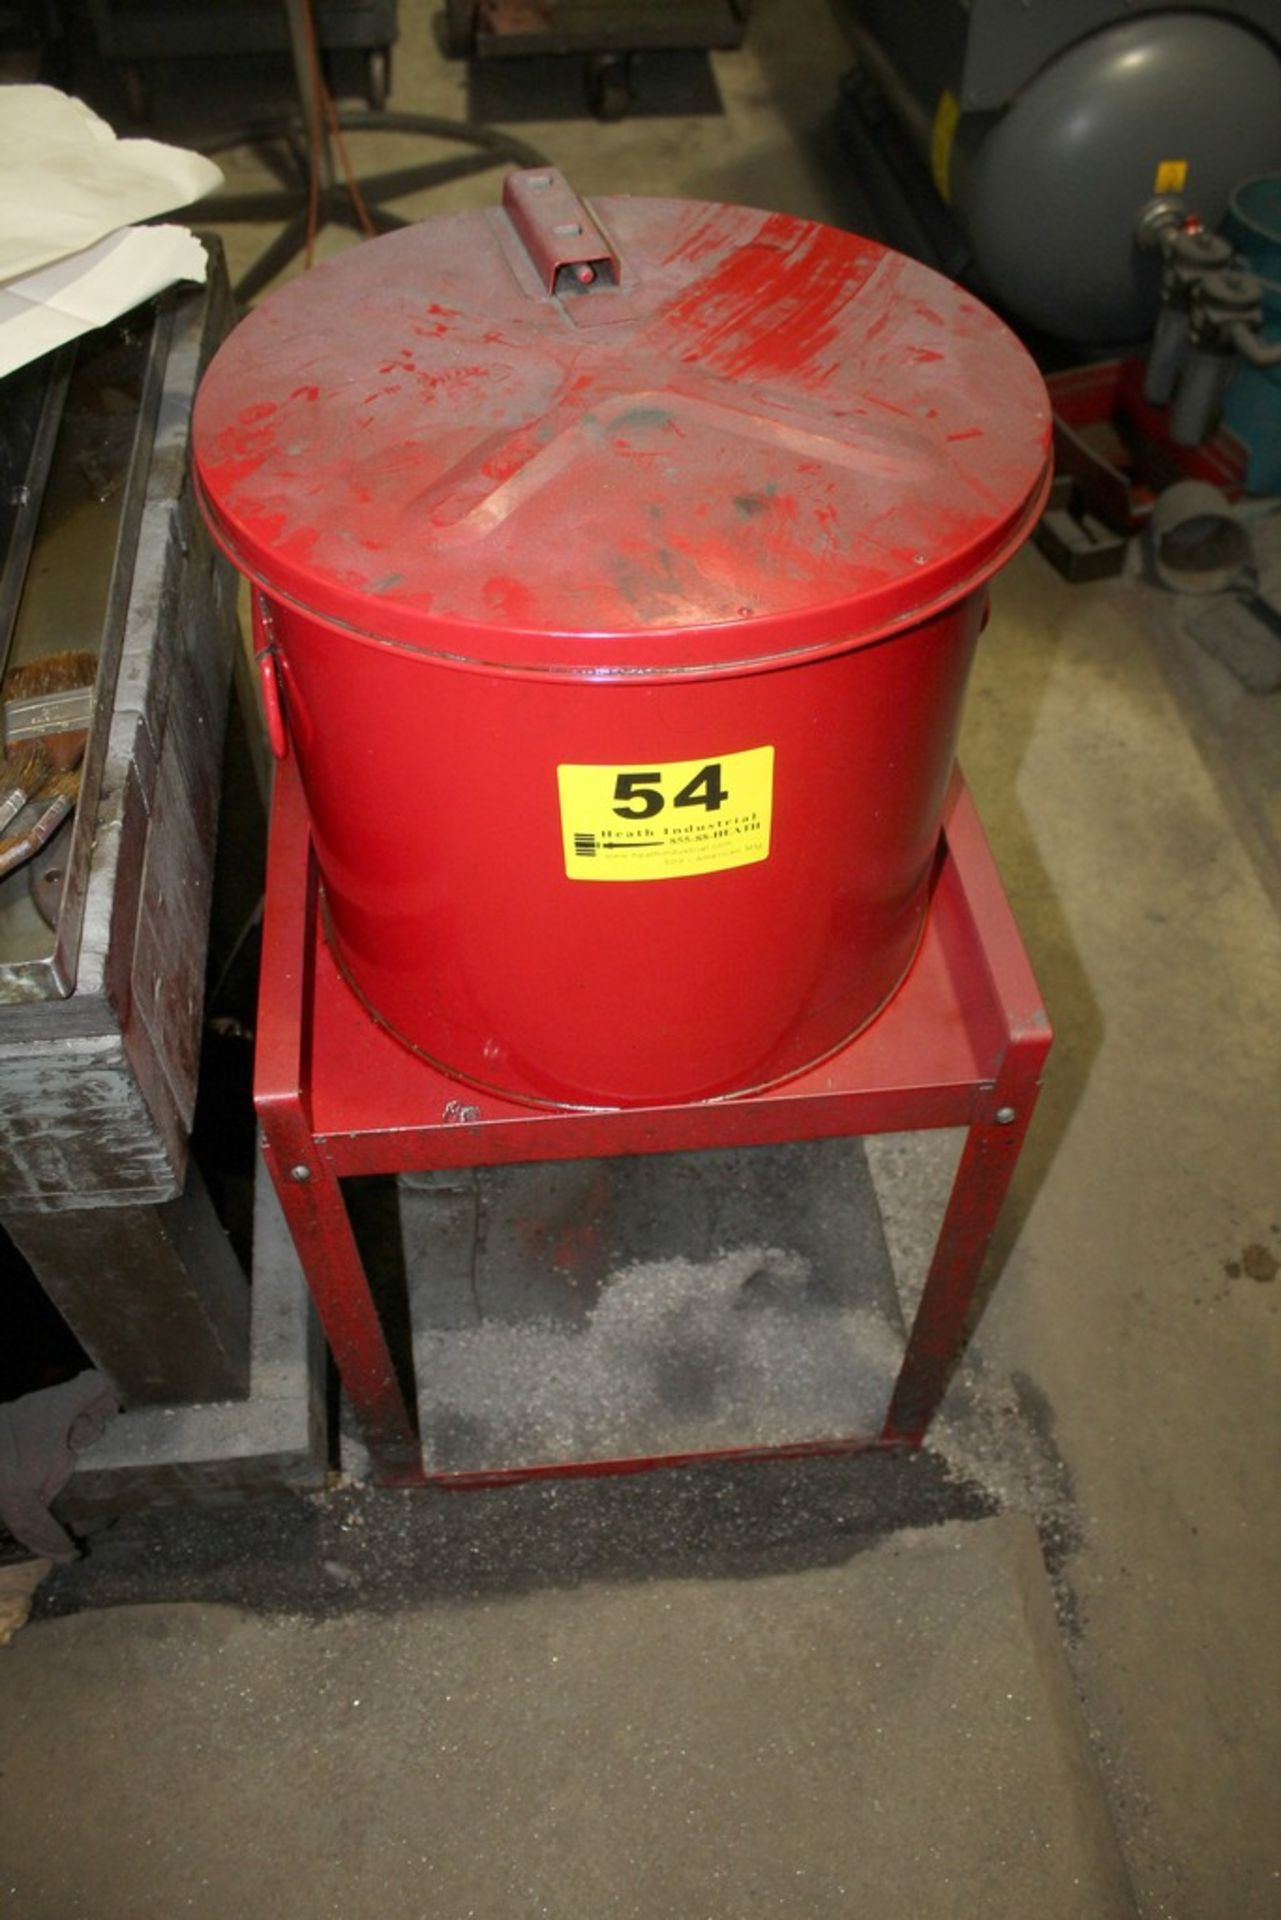 Lot 54 - RED PARTS CLEANER ON STAND